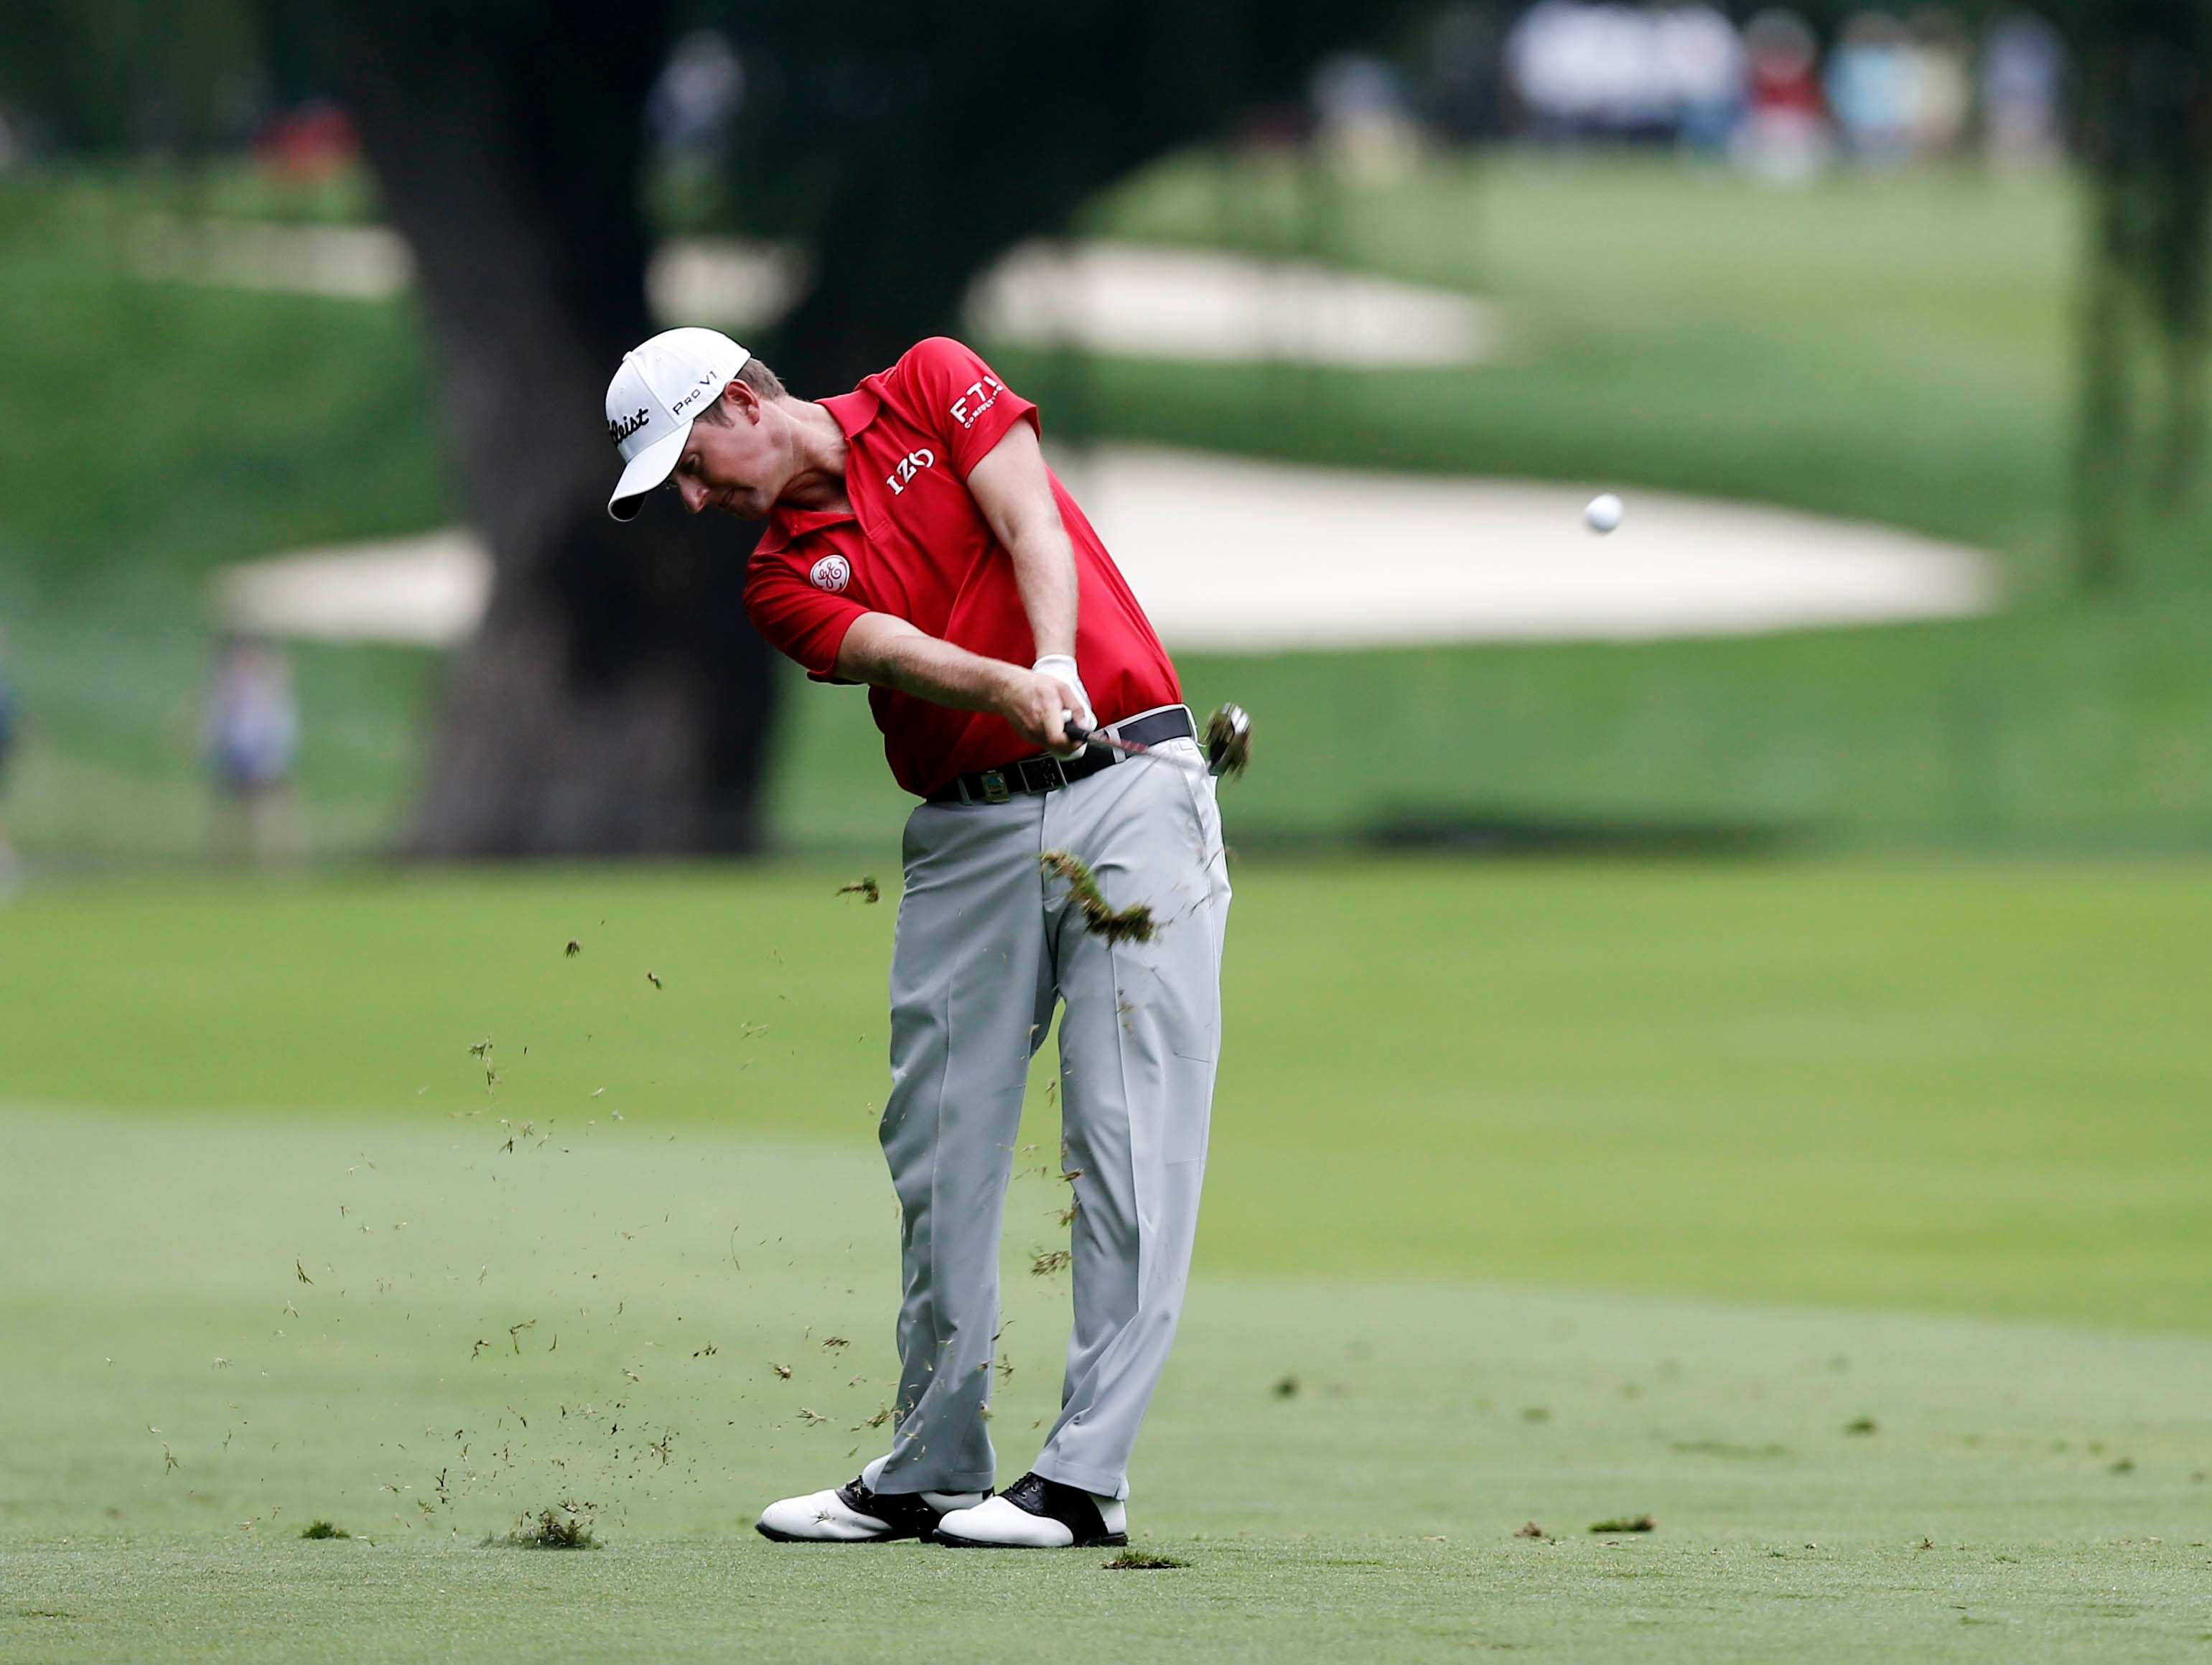 Webb Simpson plays form the 8th fairway. The 2012 U.S. Open champ matched the course record with a 64 and is at 4 under.